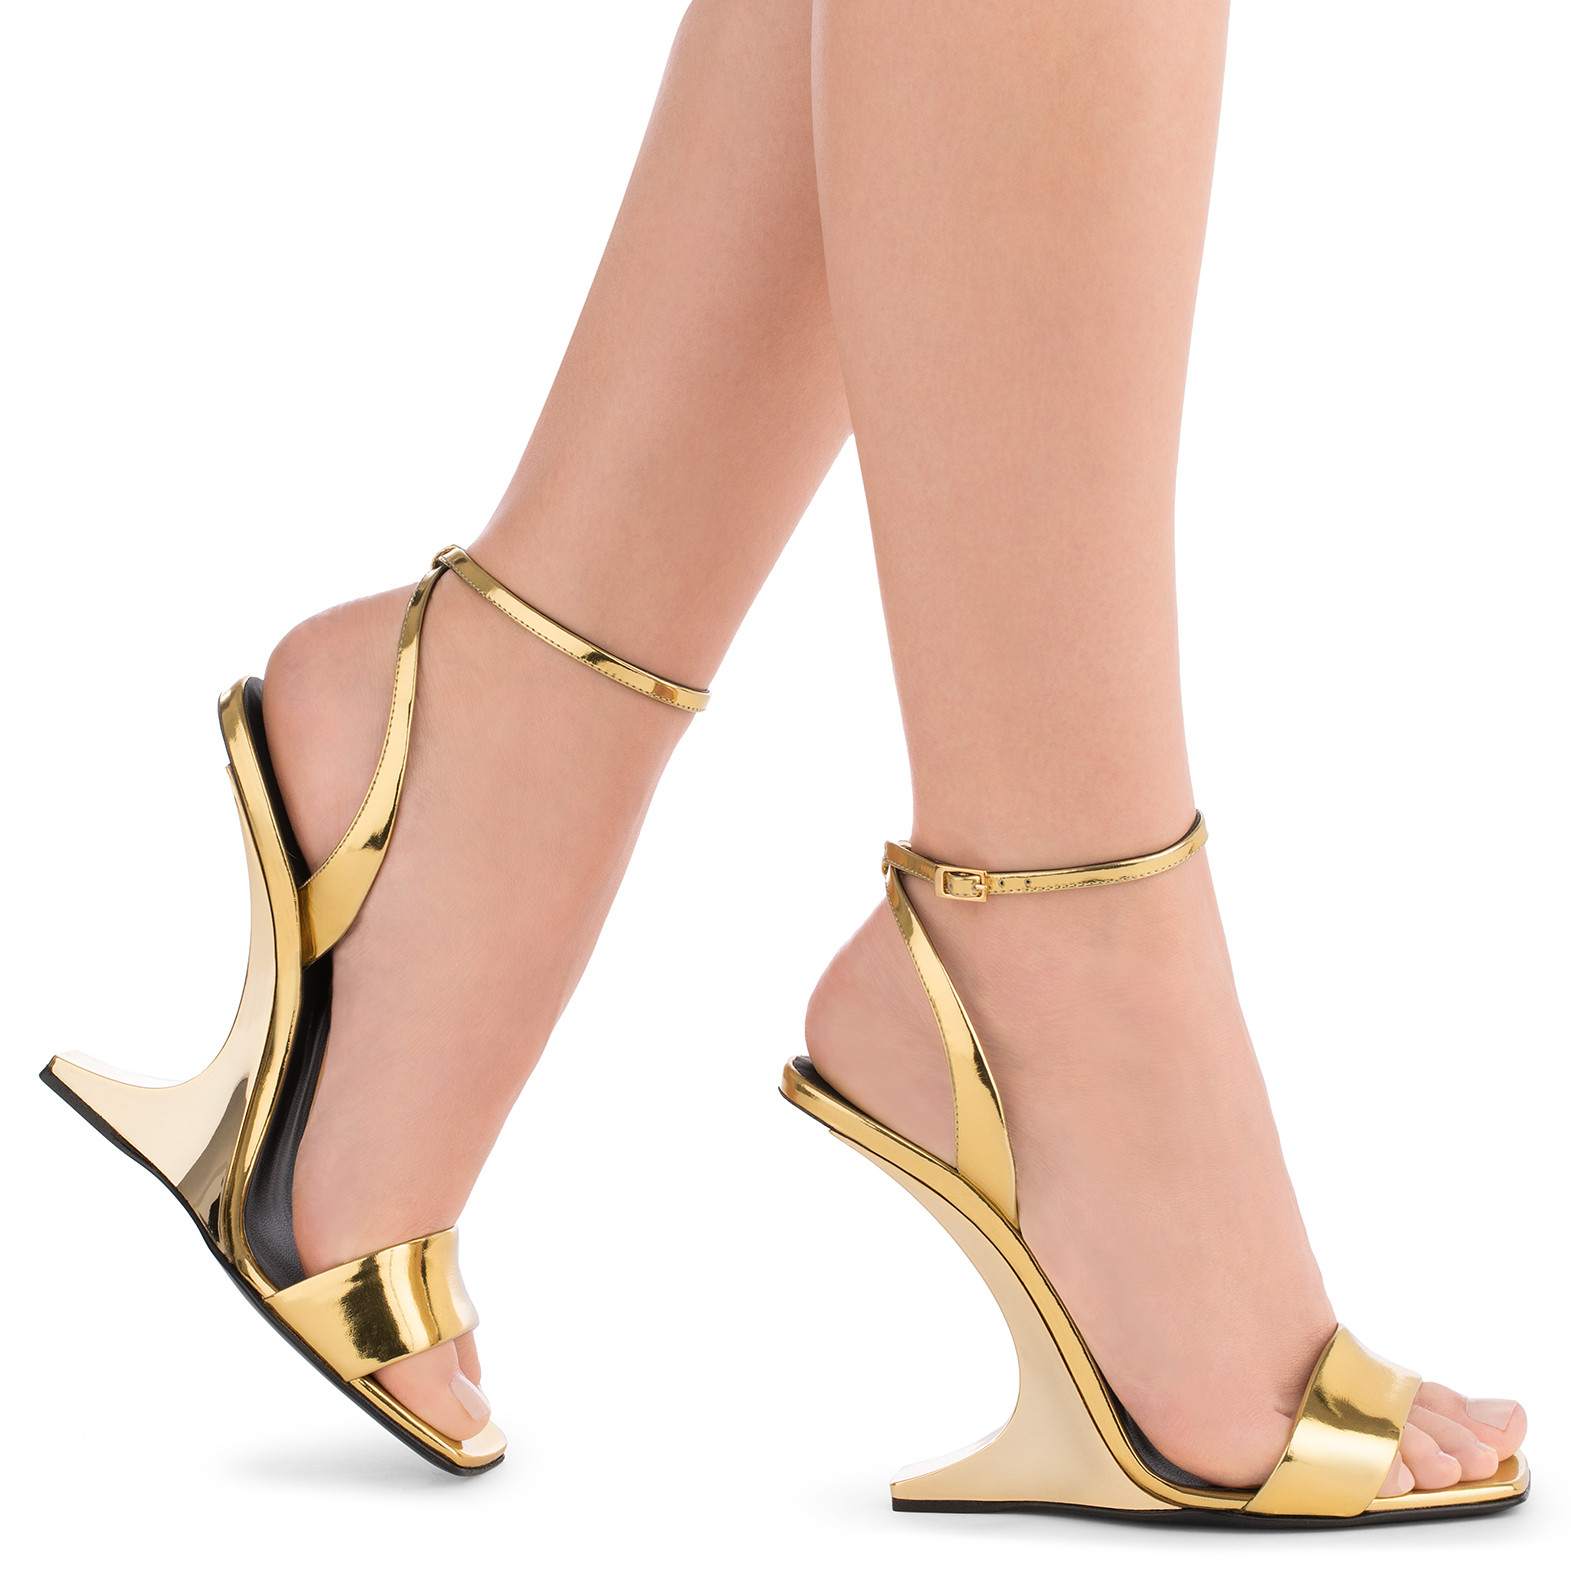 - MIRRORED GOLD PATENT LEATHER WEDGE PICARD